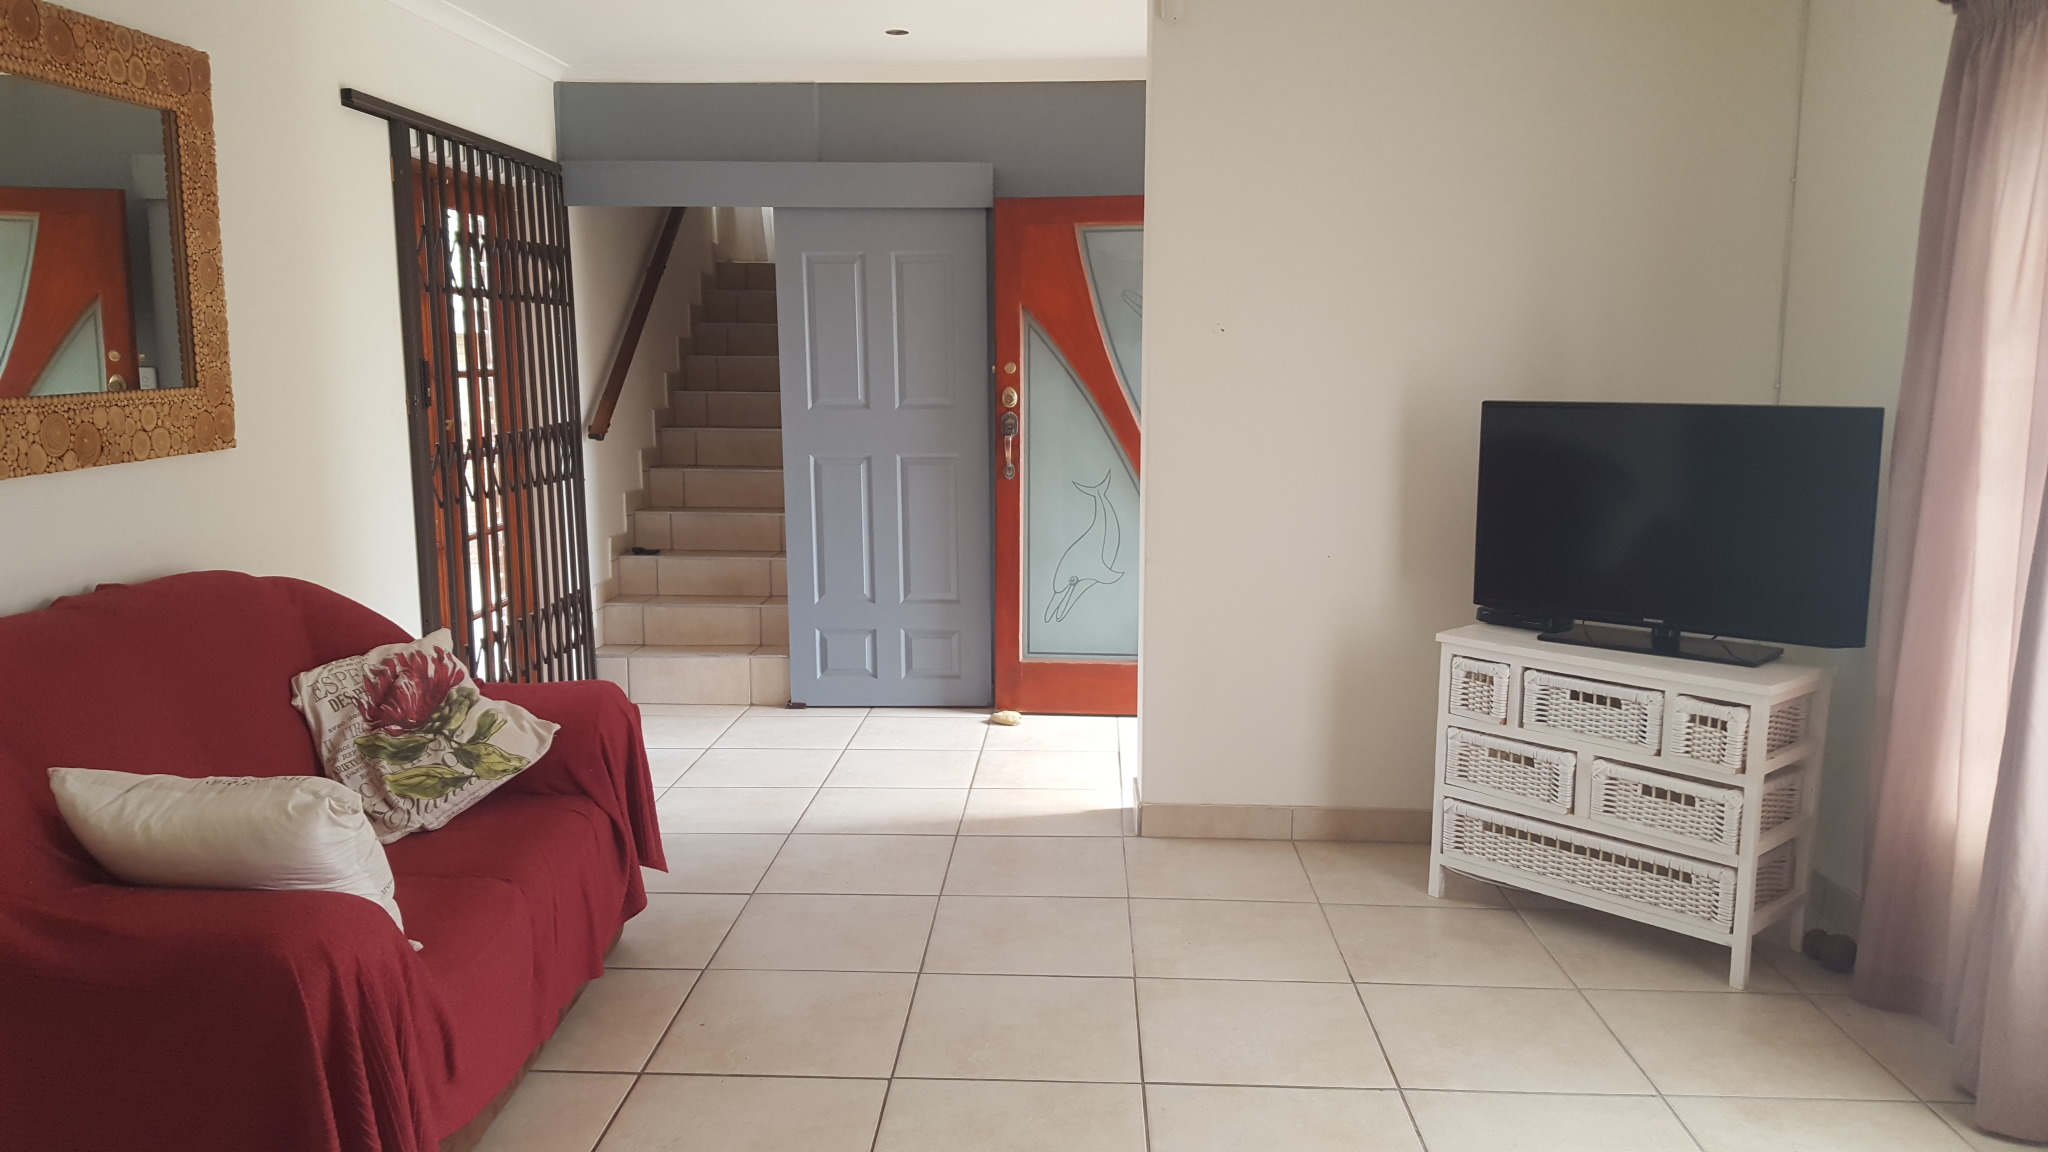 5 Bedroom House for sale in Bluewater Bay ENT0067493 : photo#12